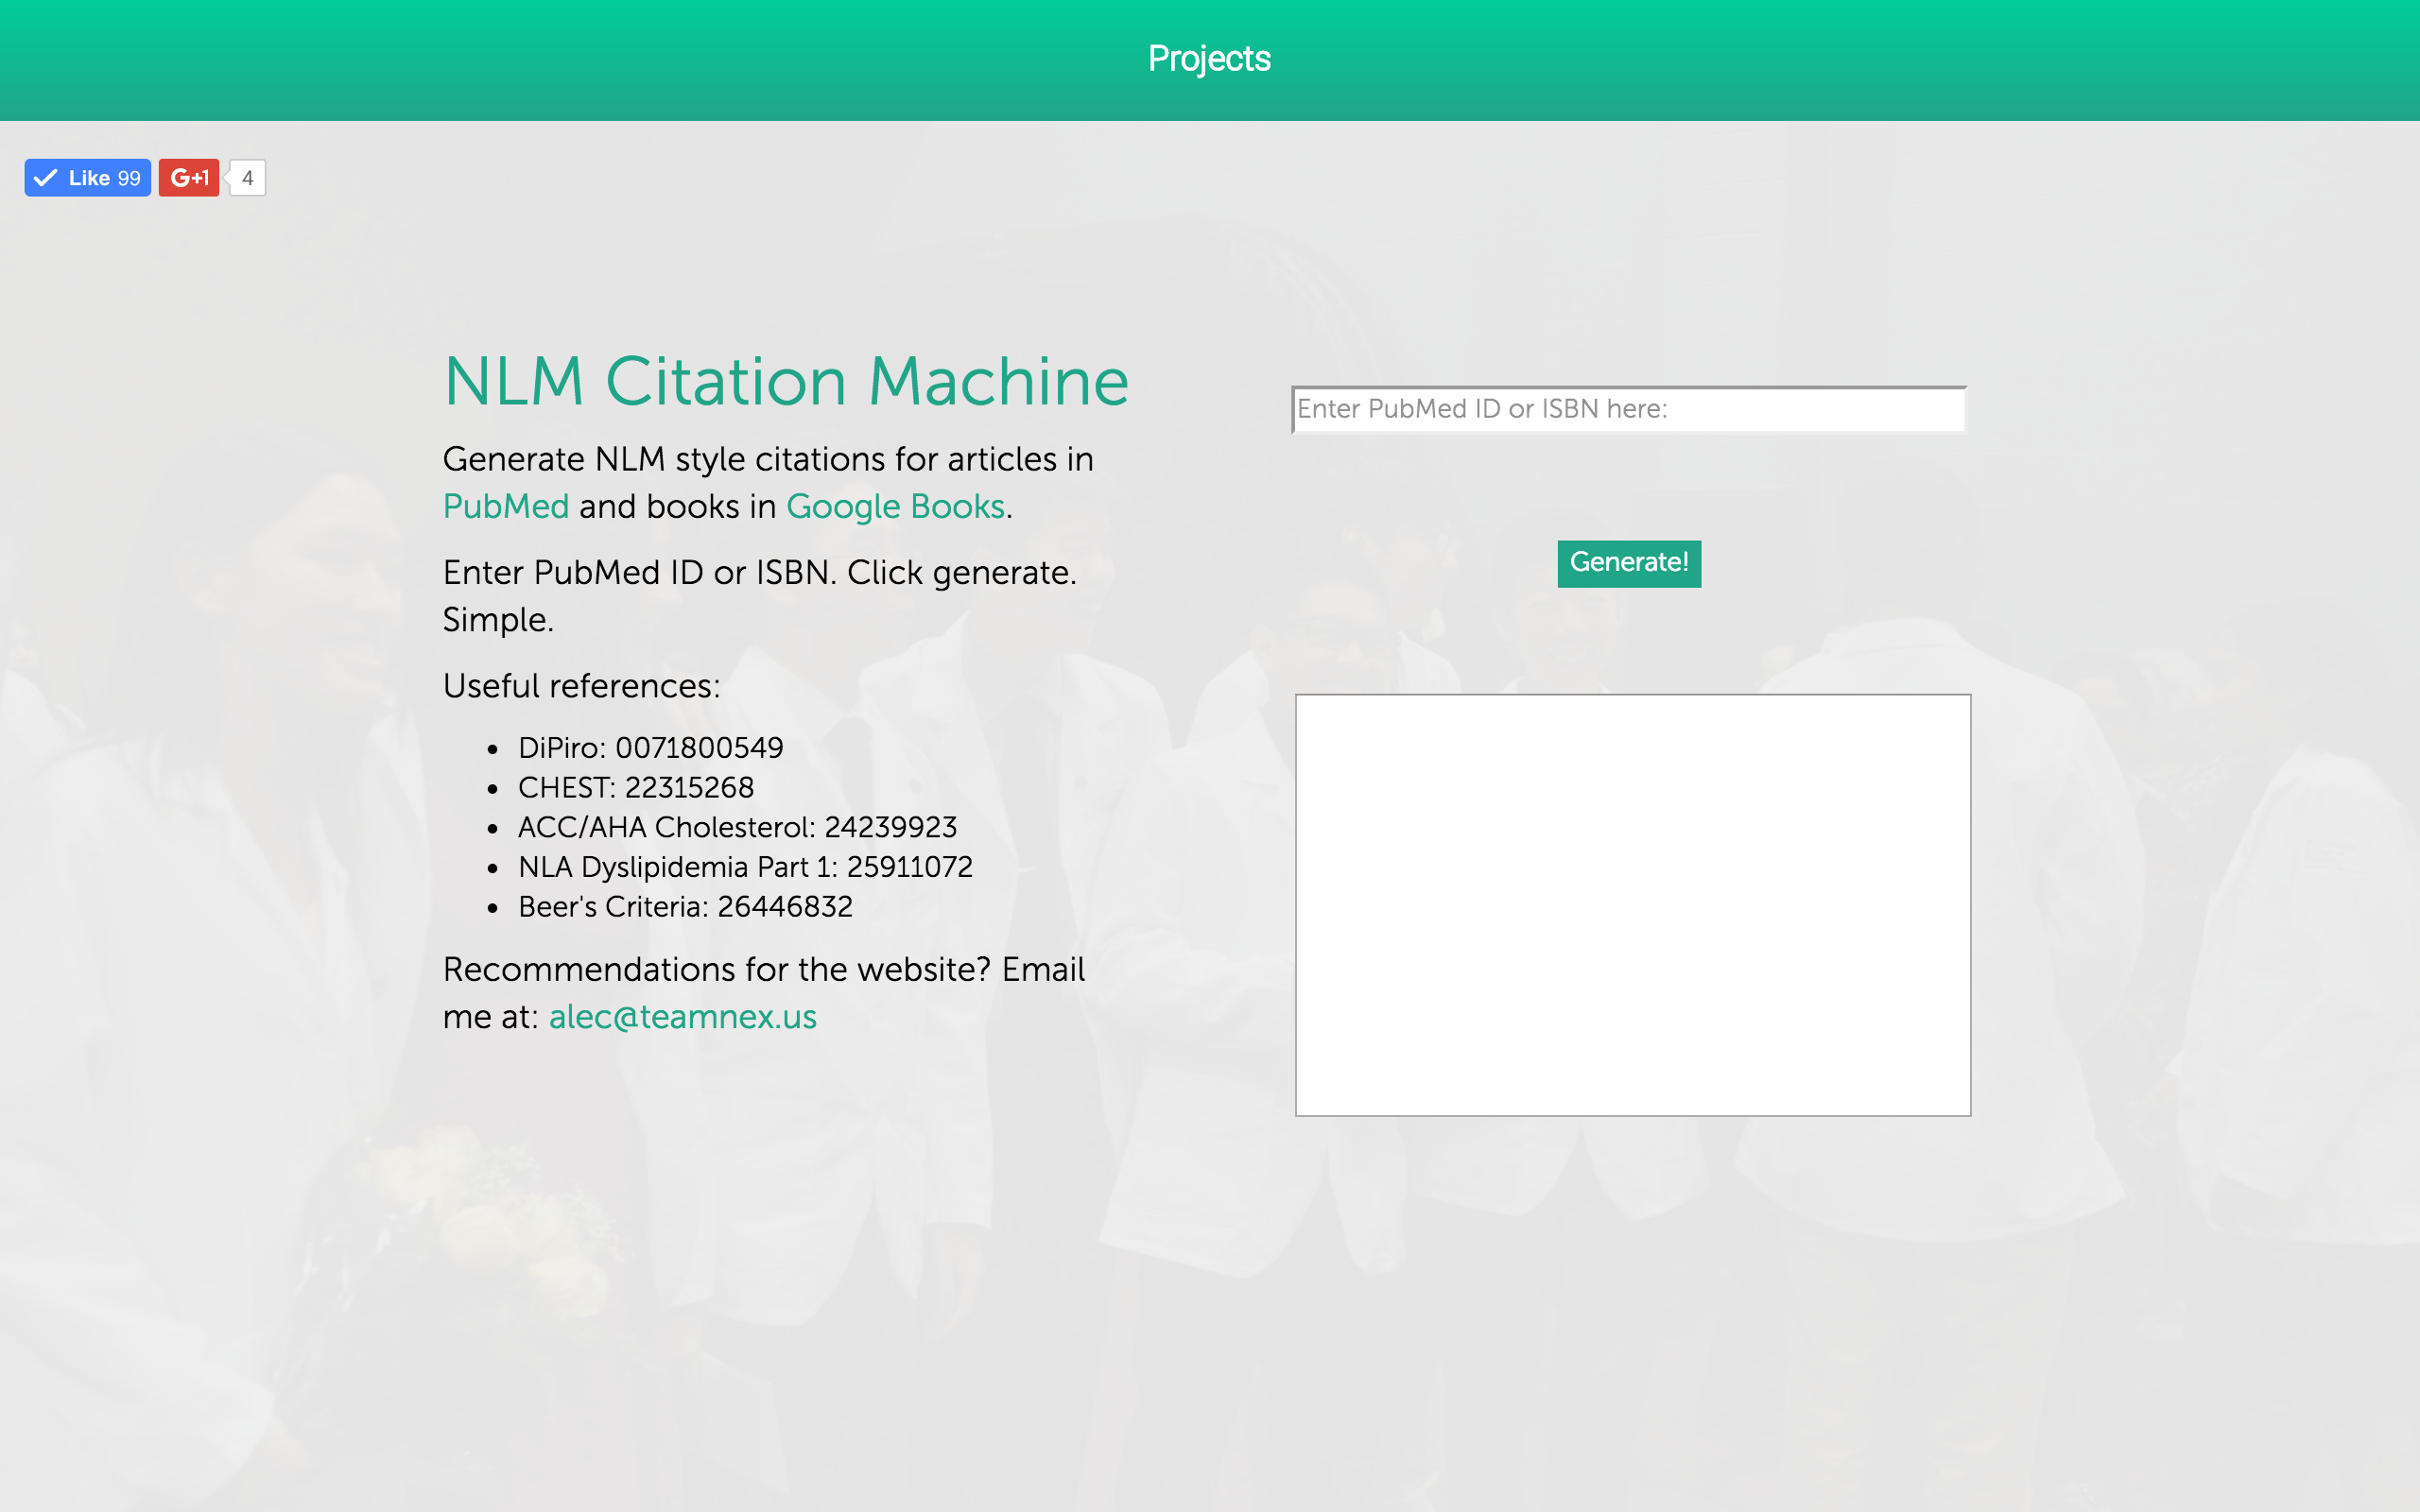 NLM Citation Machine